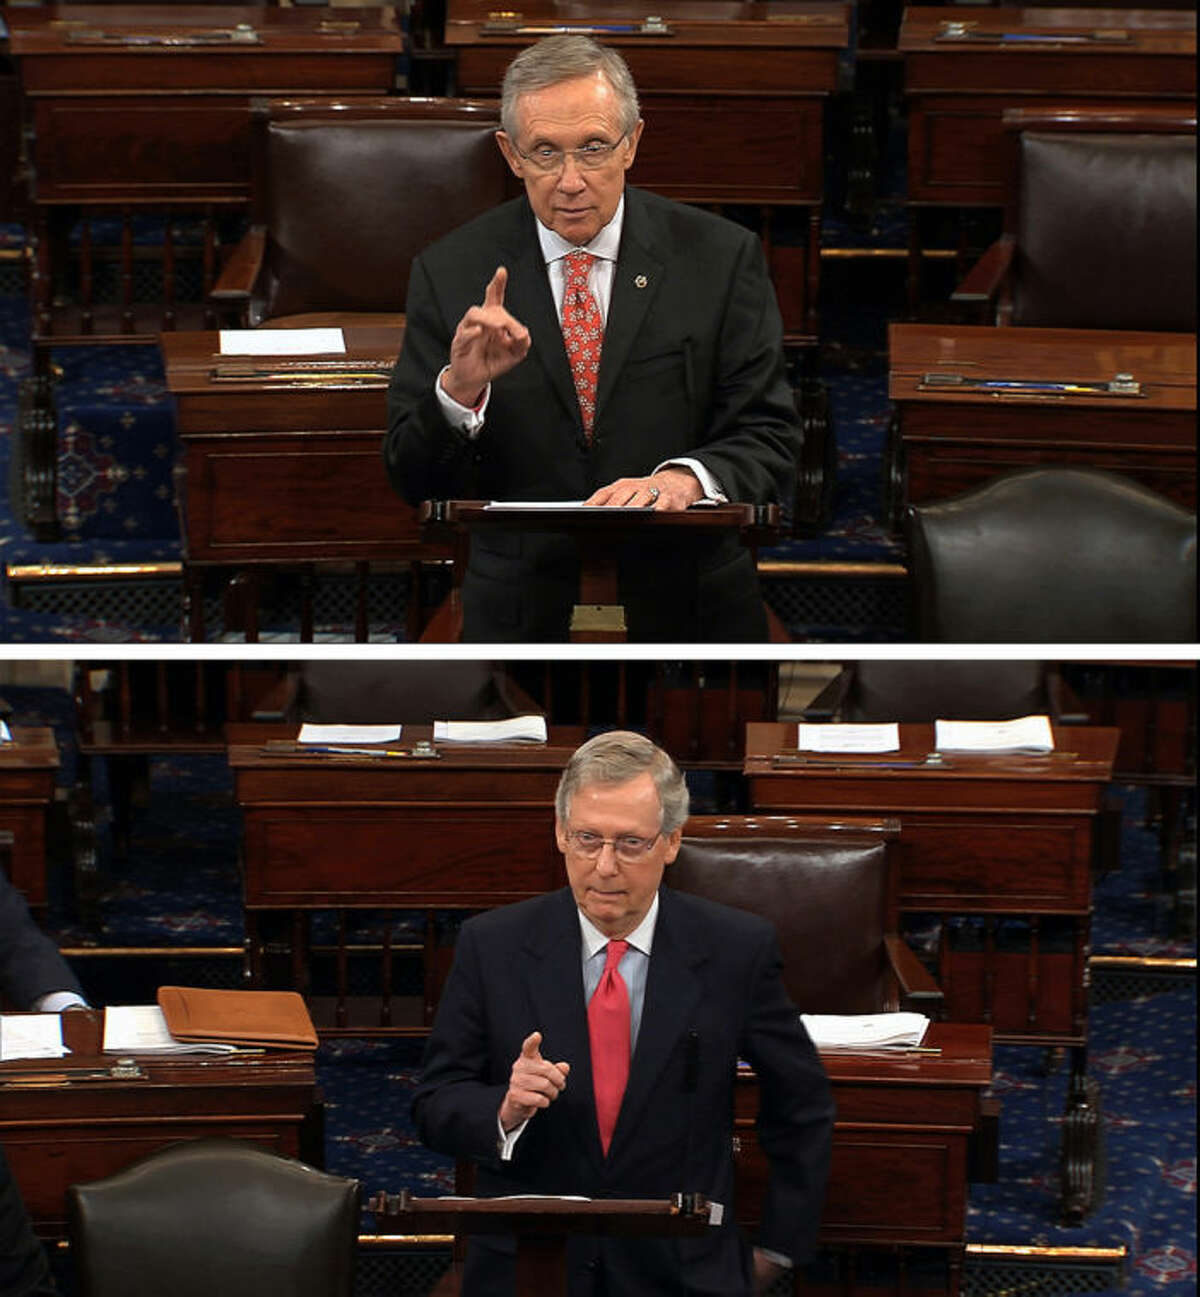 FILE - In this combination of July 11, 2013, file images from Senate Television Majority Leader Harry Reid, D-Nev., top, and Republican leader, Sen. Mitch McConnell, R-Ky., speak on the floor of the Senate on Capitol Hill in Washington. Democrats threatened to change Senate rules unilaterally if Republicans block yes-or-no votes on several of President Barack Obama?•s top-level nominees. Reid accused Republicans of trying to deny Obama the right to have his team in place, and accused McConnell of failing to live up to his commitments to allow votes on all nominees, except under extraordinary circumstances. Moments later, McConnell said Reid was misquoting him and at the same time failing to honor his word not to change the rules of the Senate unilaterally. (AP Photo/Senate TV, Files)